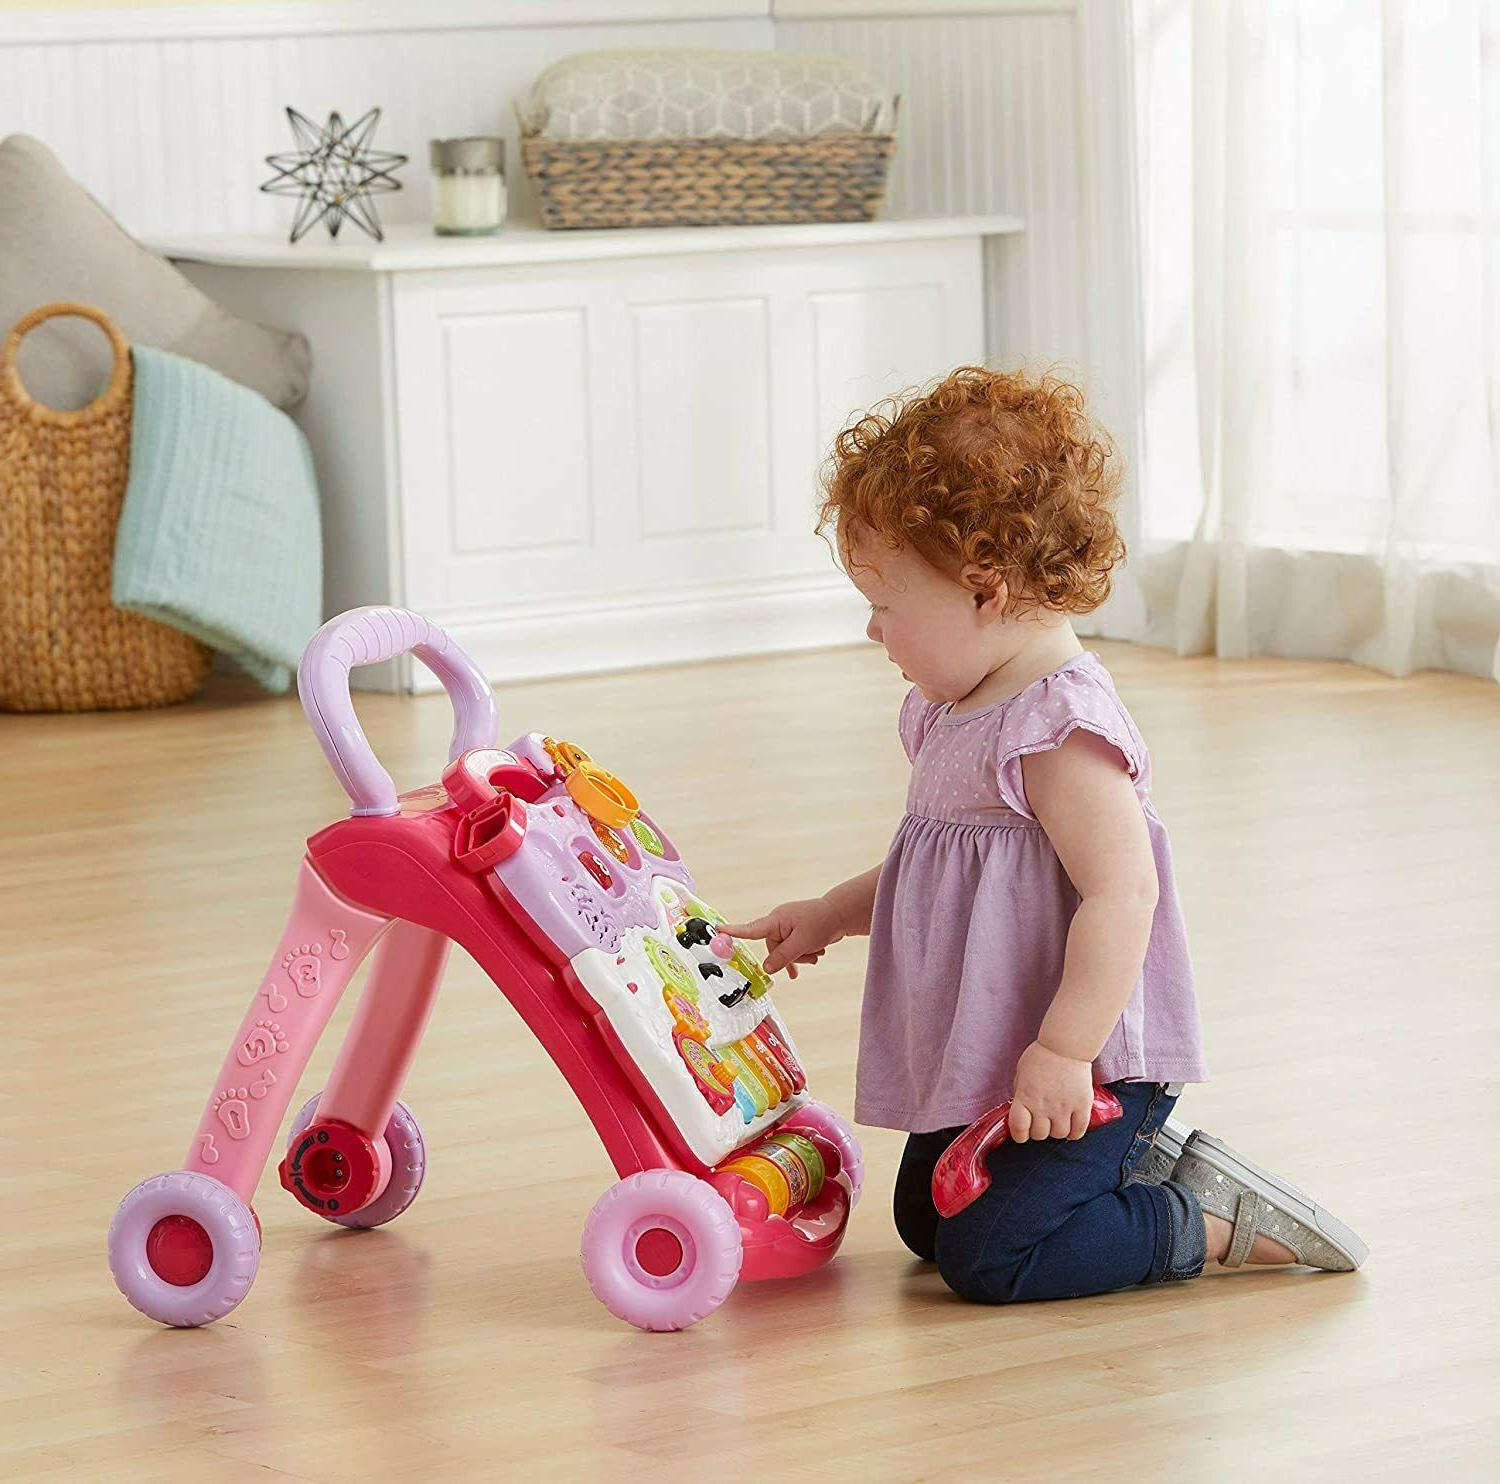 VTech Baby Toddler Learning Sit-to-Stand Pink